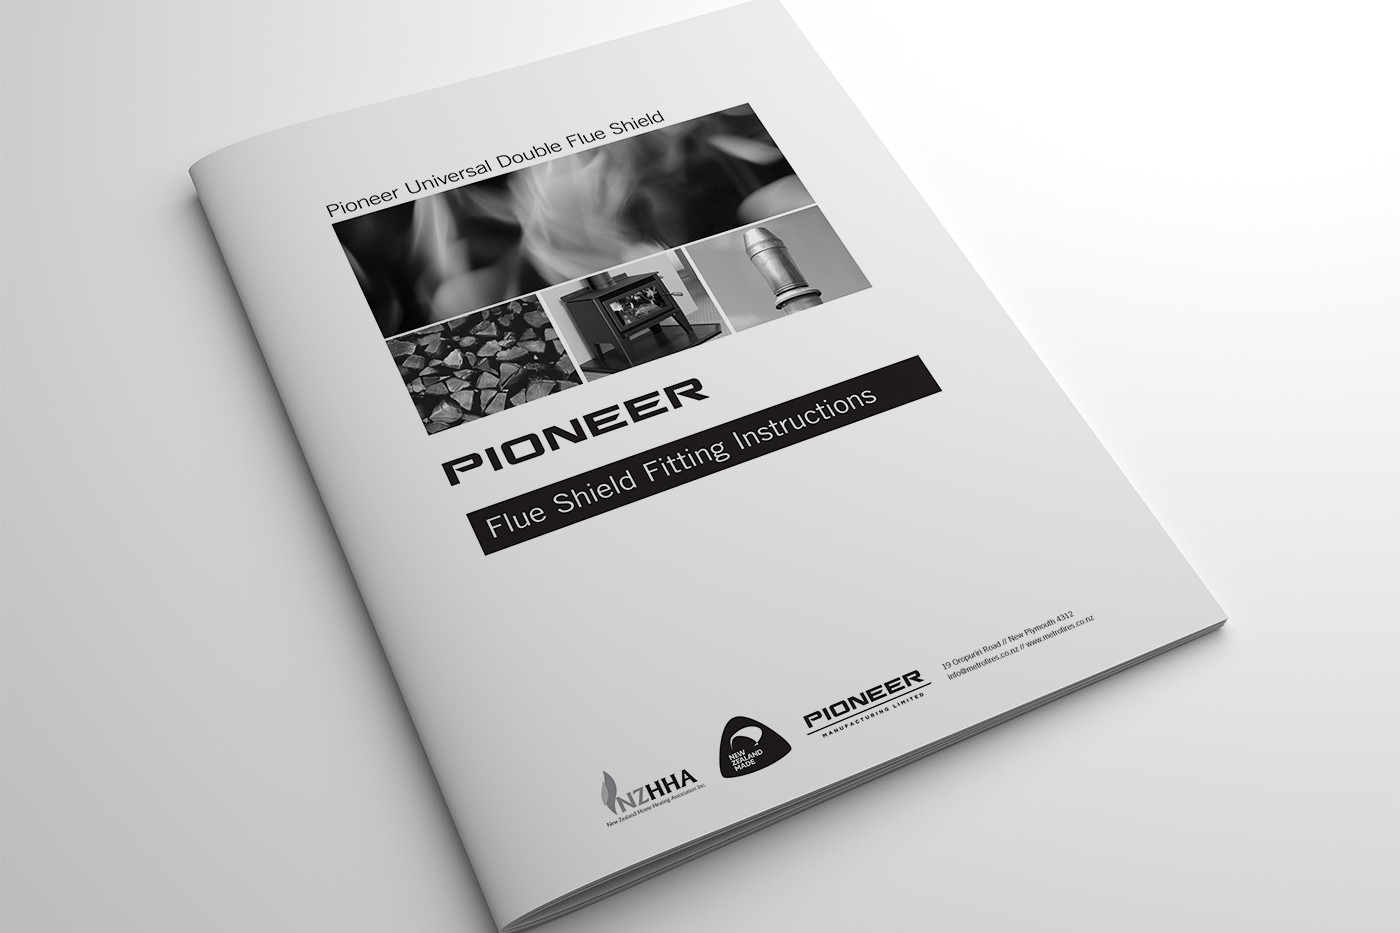 Pioneer Flue Shield Manual